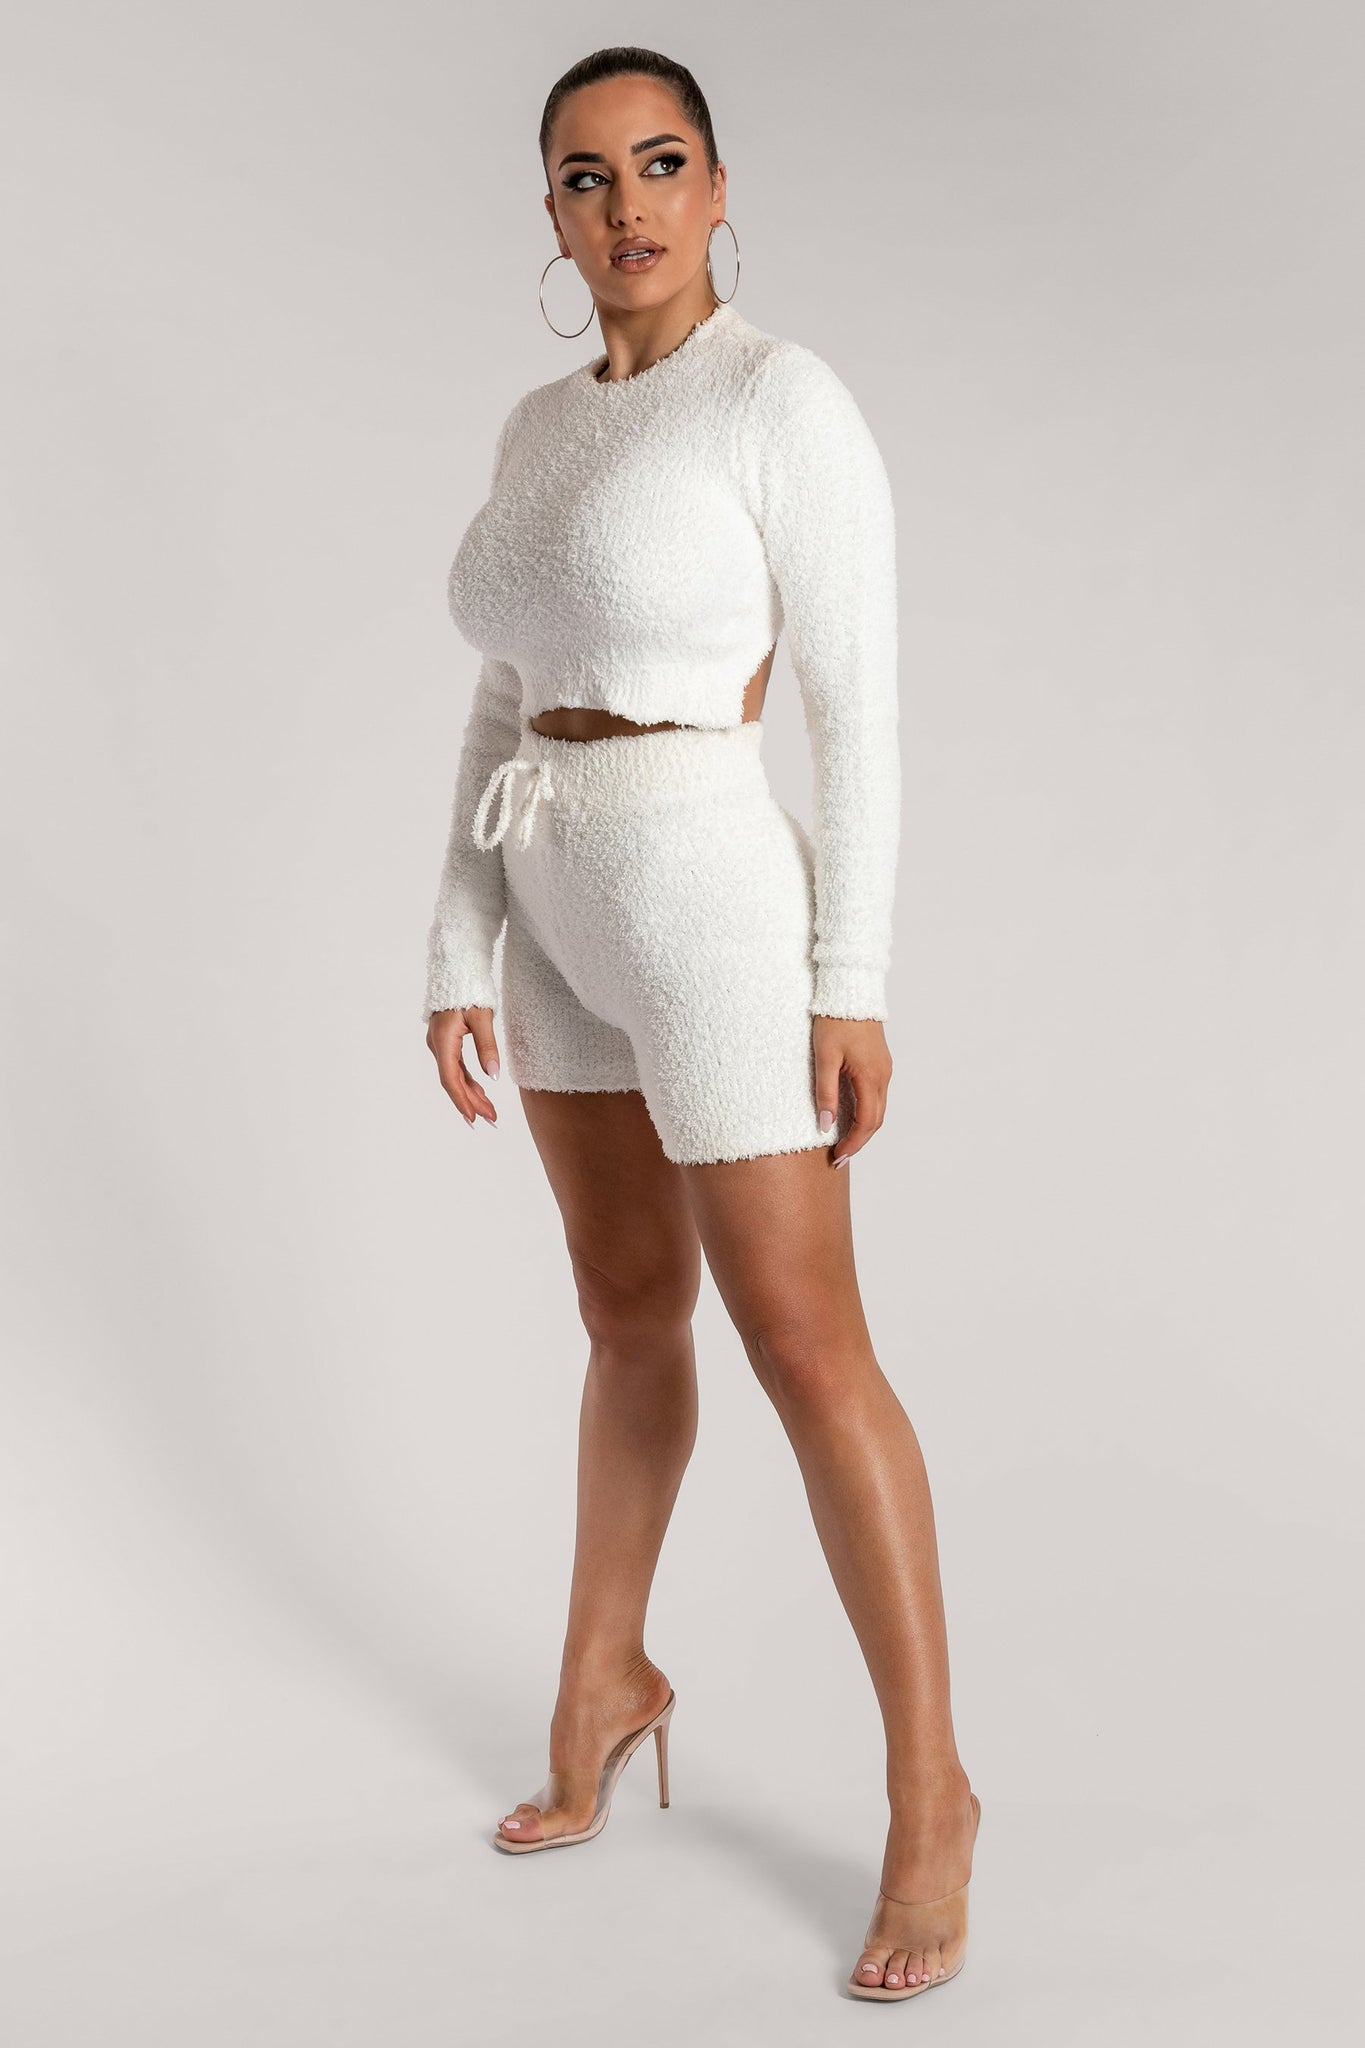 Charlotte Popcorn Long Sleeve Cut Out Back Crop Top - Cream - MESHKI